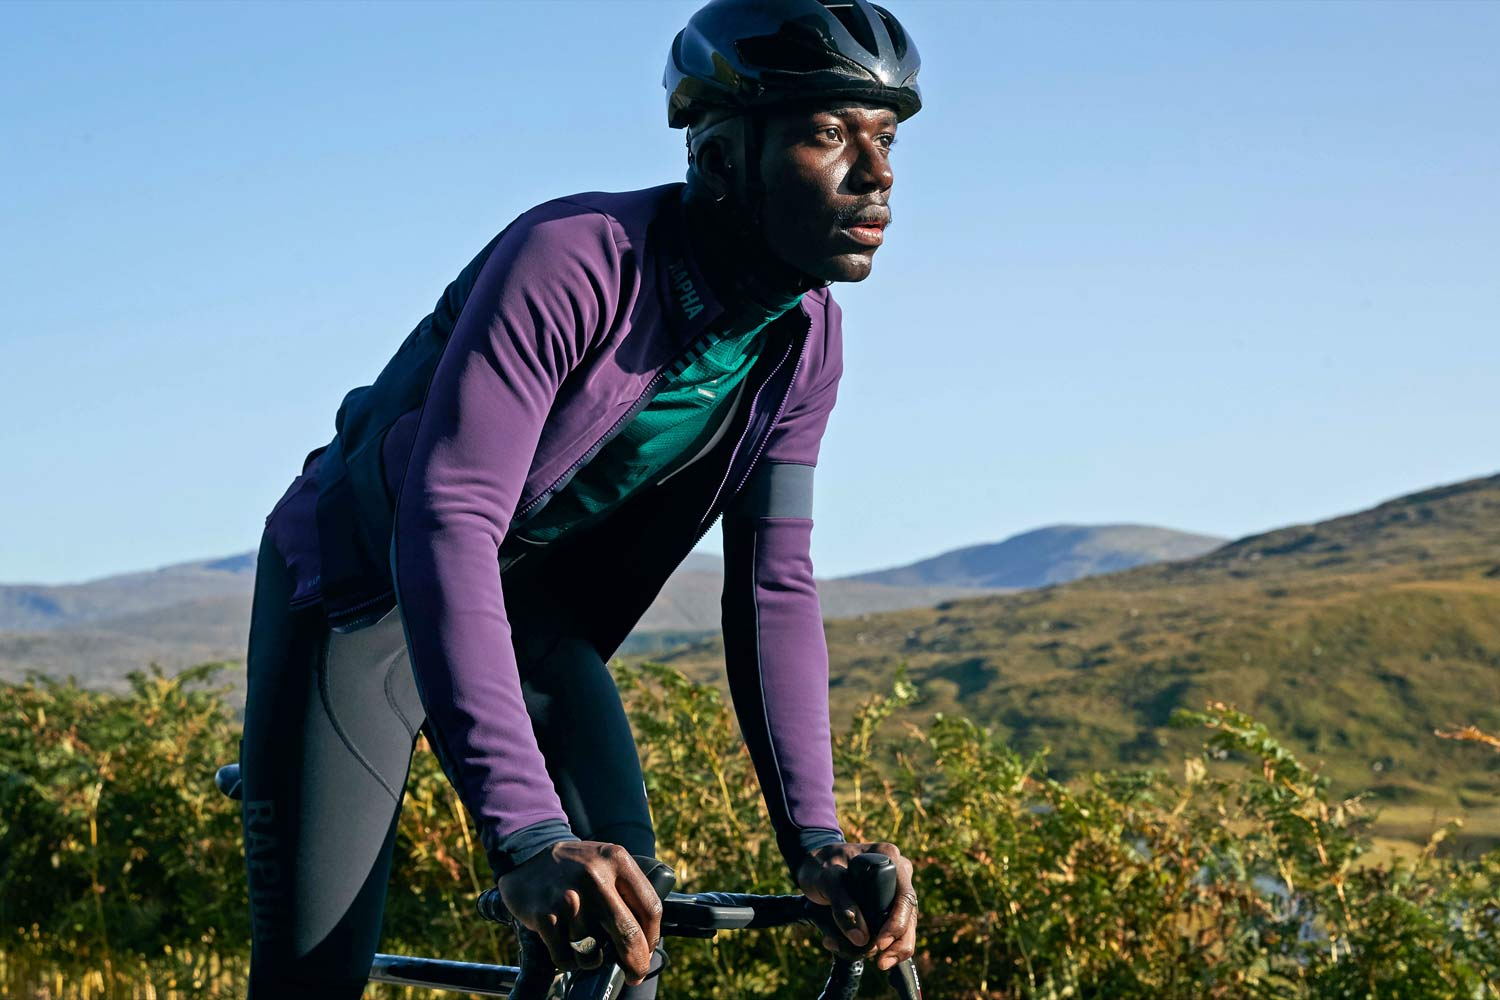 Rapha Pro Team Winter road riding racing training collection, Pro Team Winter Jacket